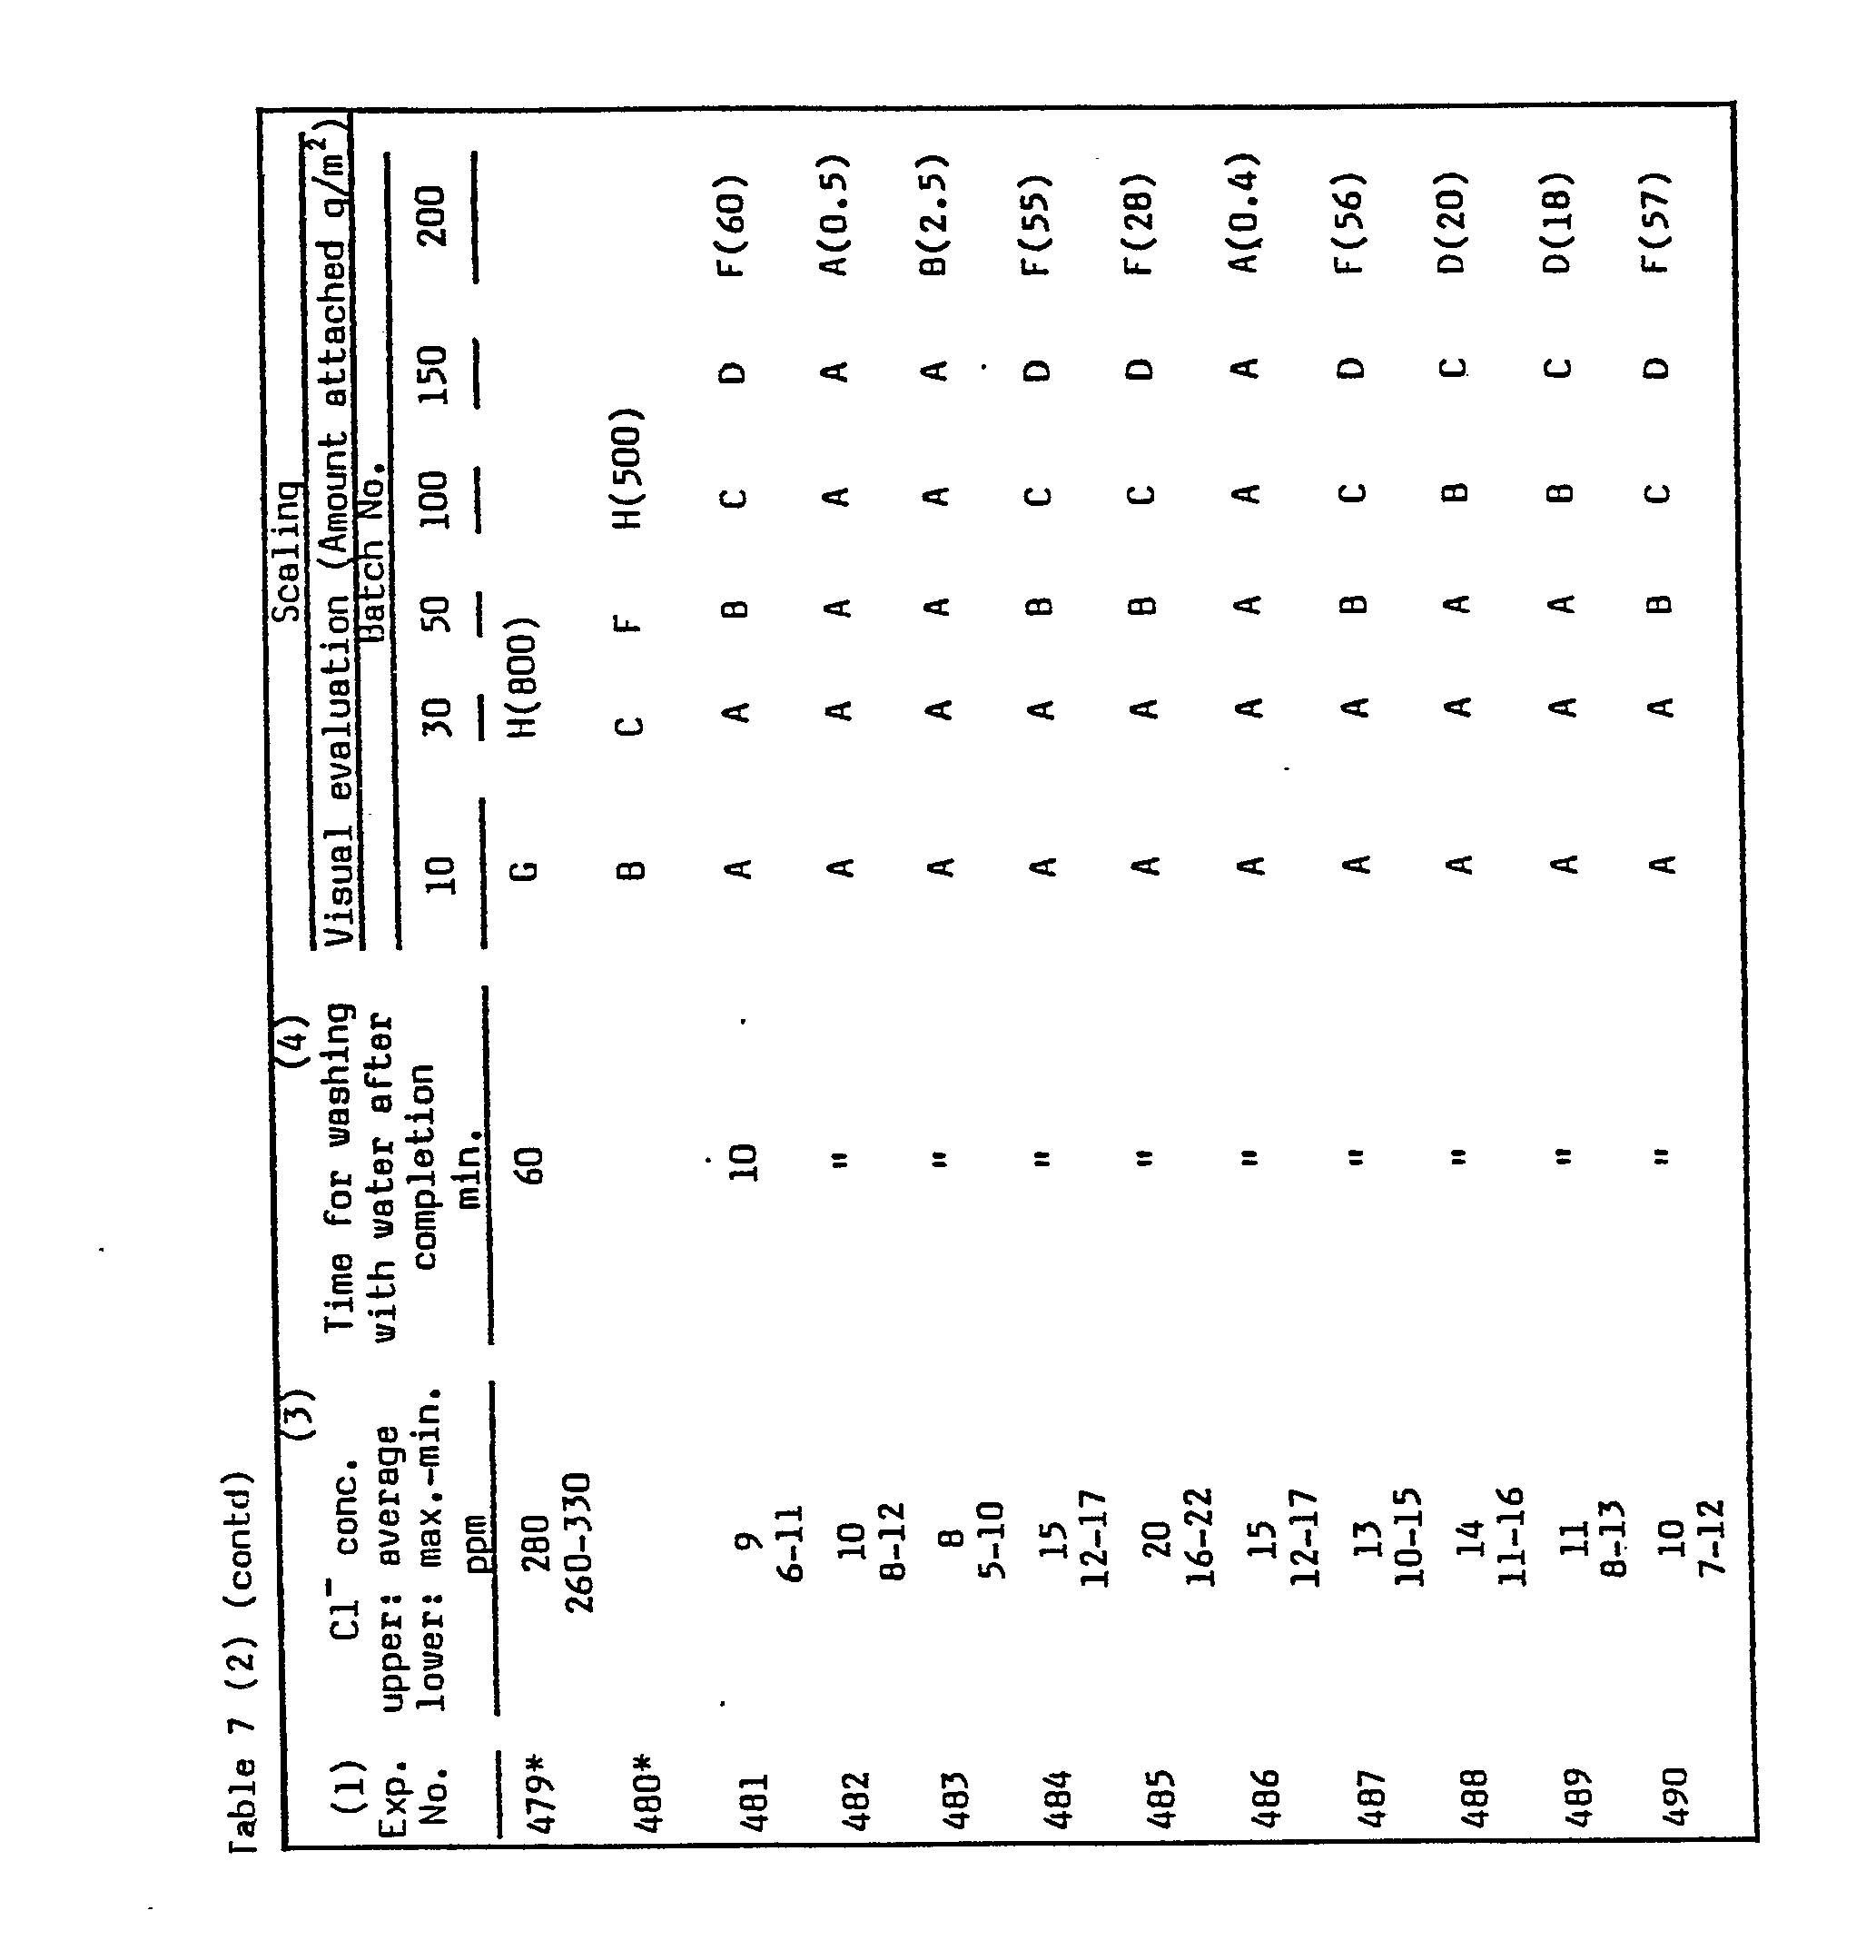 EP0172427B1 - Process for production of vinyl chloride polymer